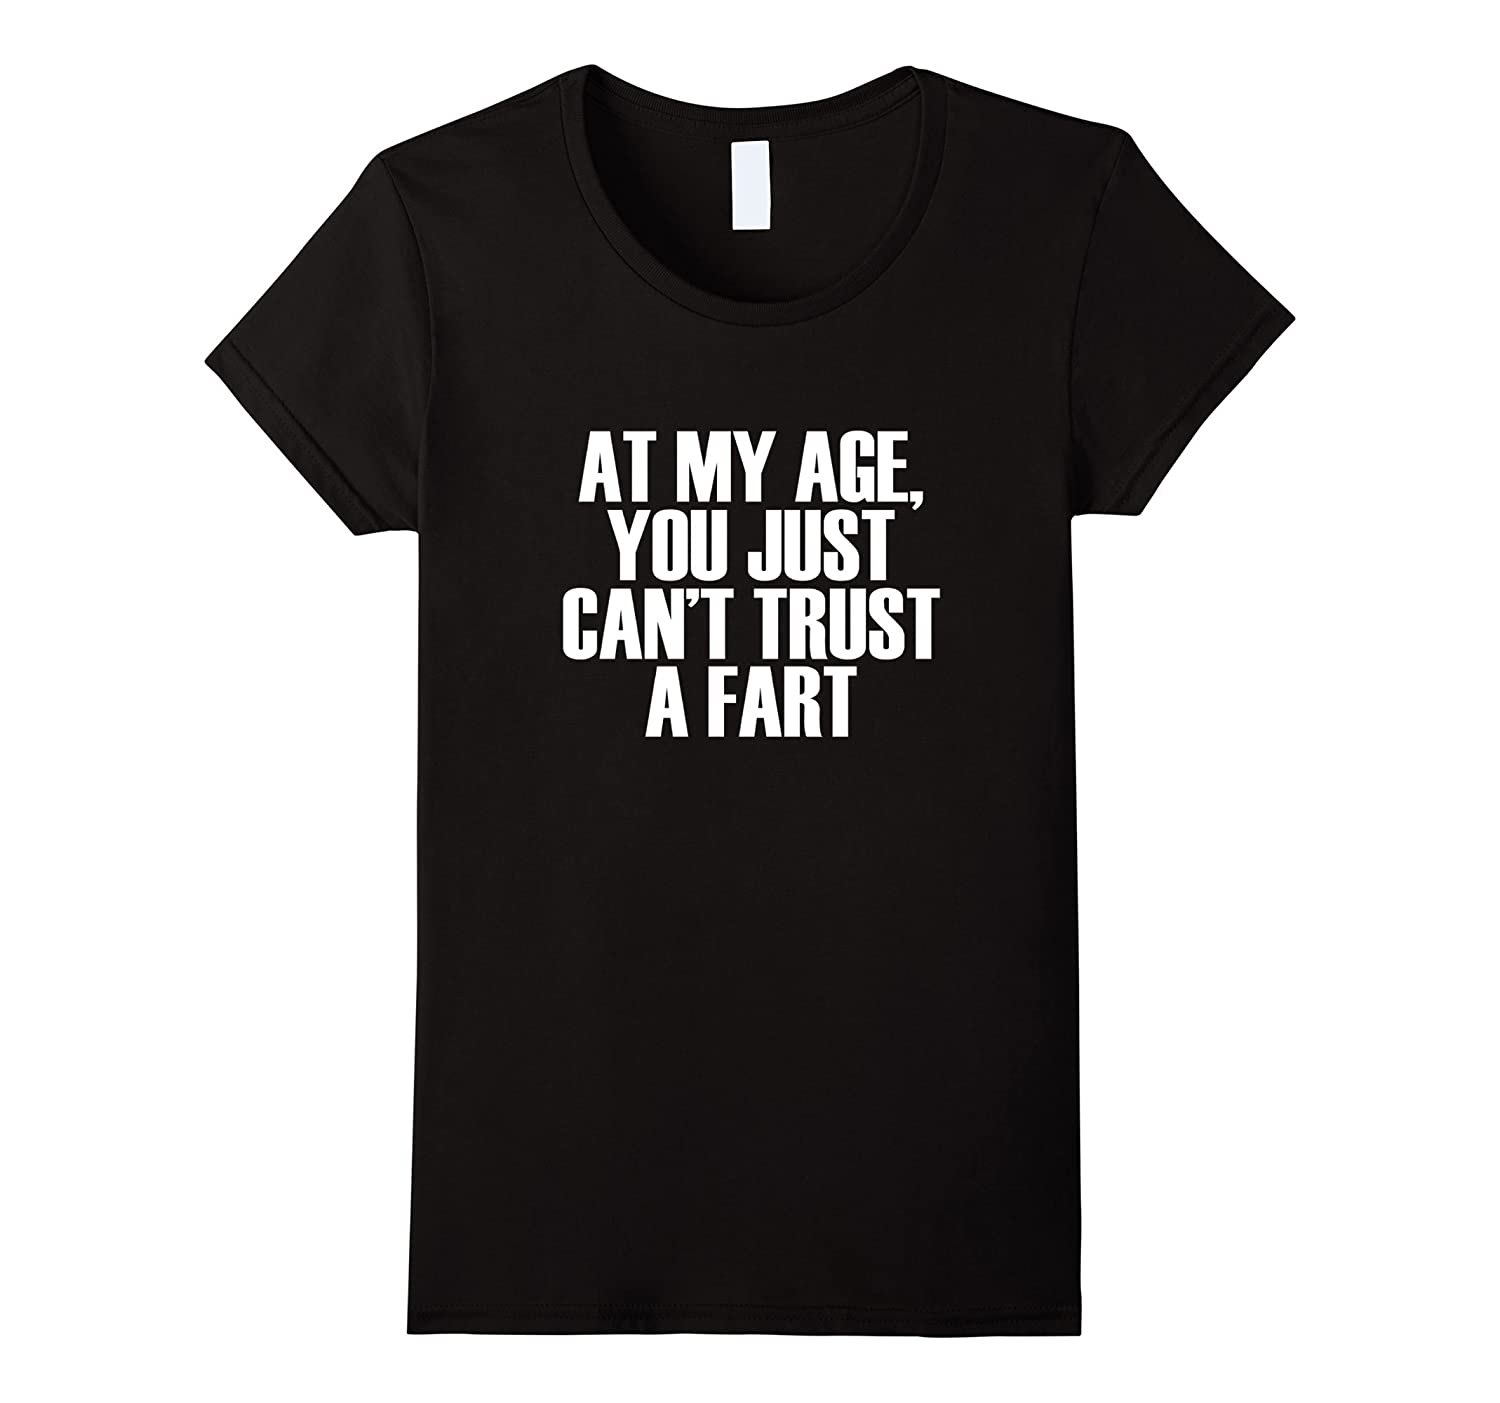 At My Age, You Just Can't Trust a Fart Funny T-Shirt